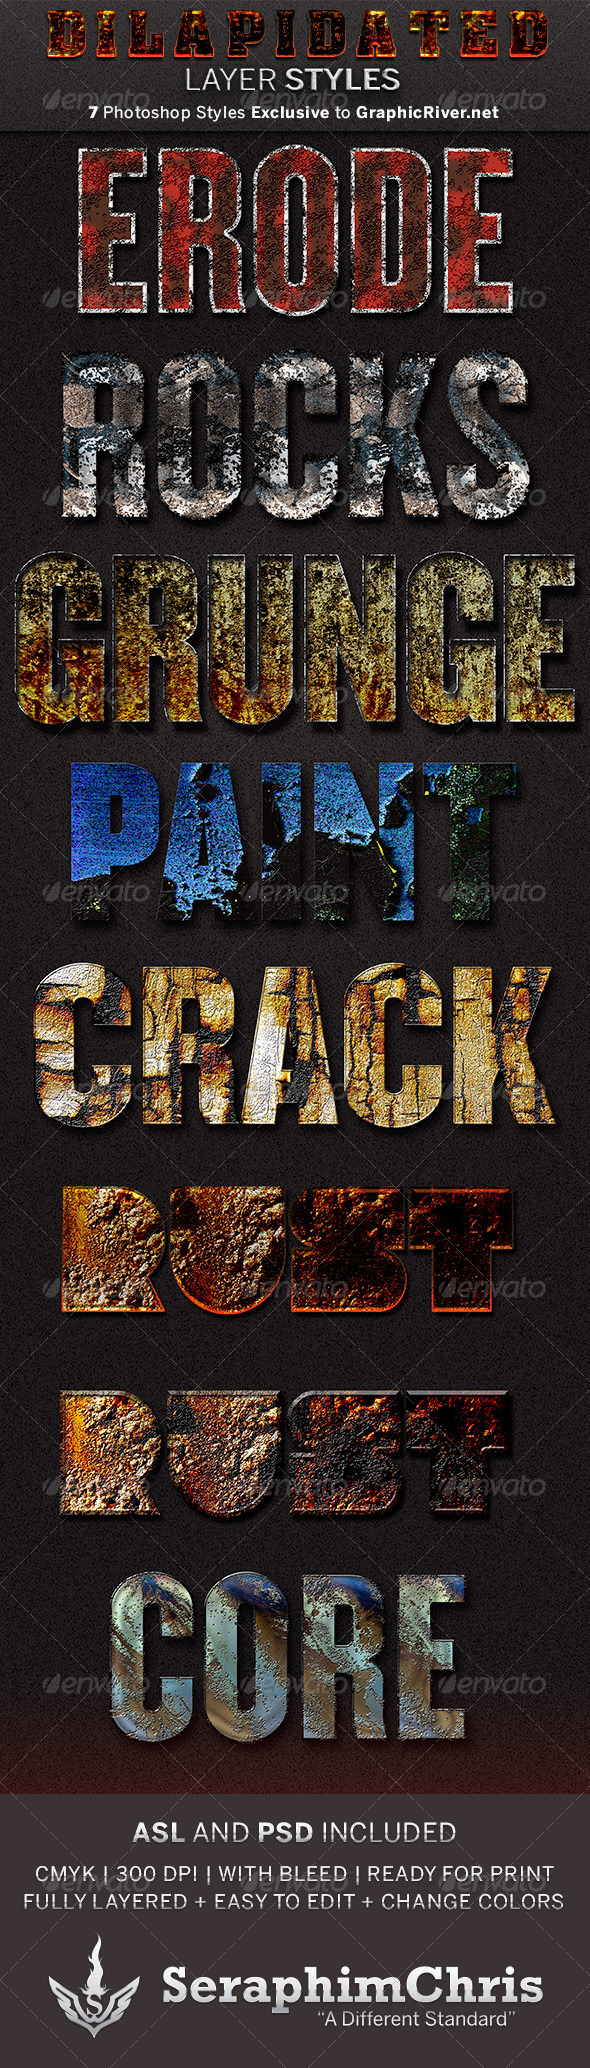 GraphicRiver Dilapidated Photoshop Layers Styles 5692242